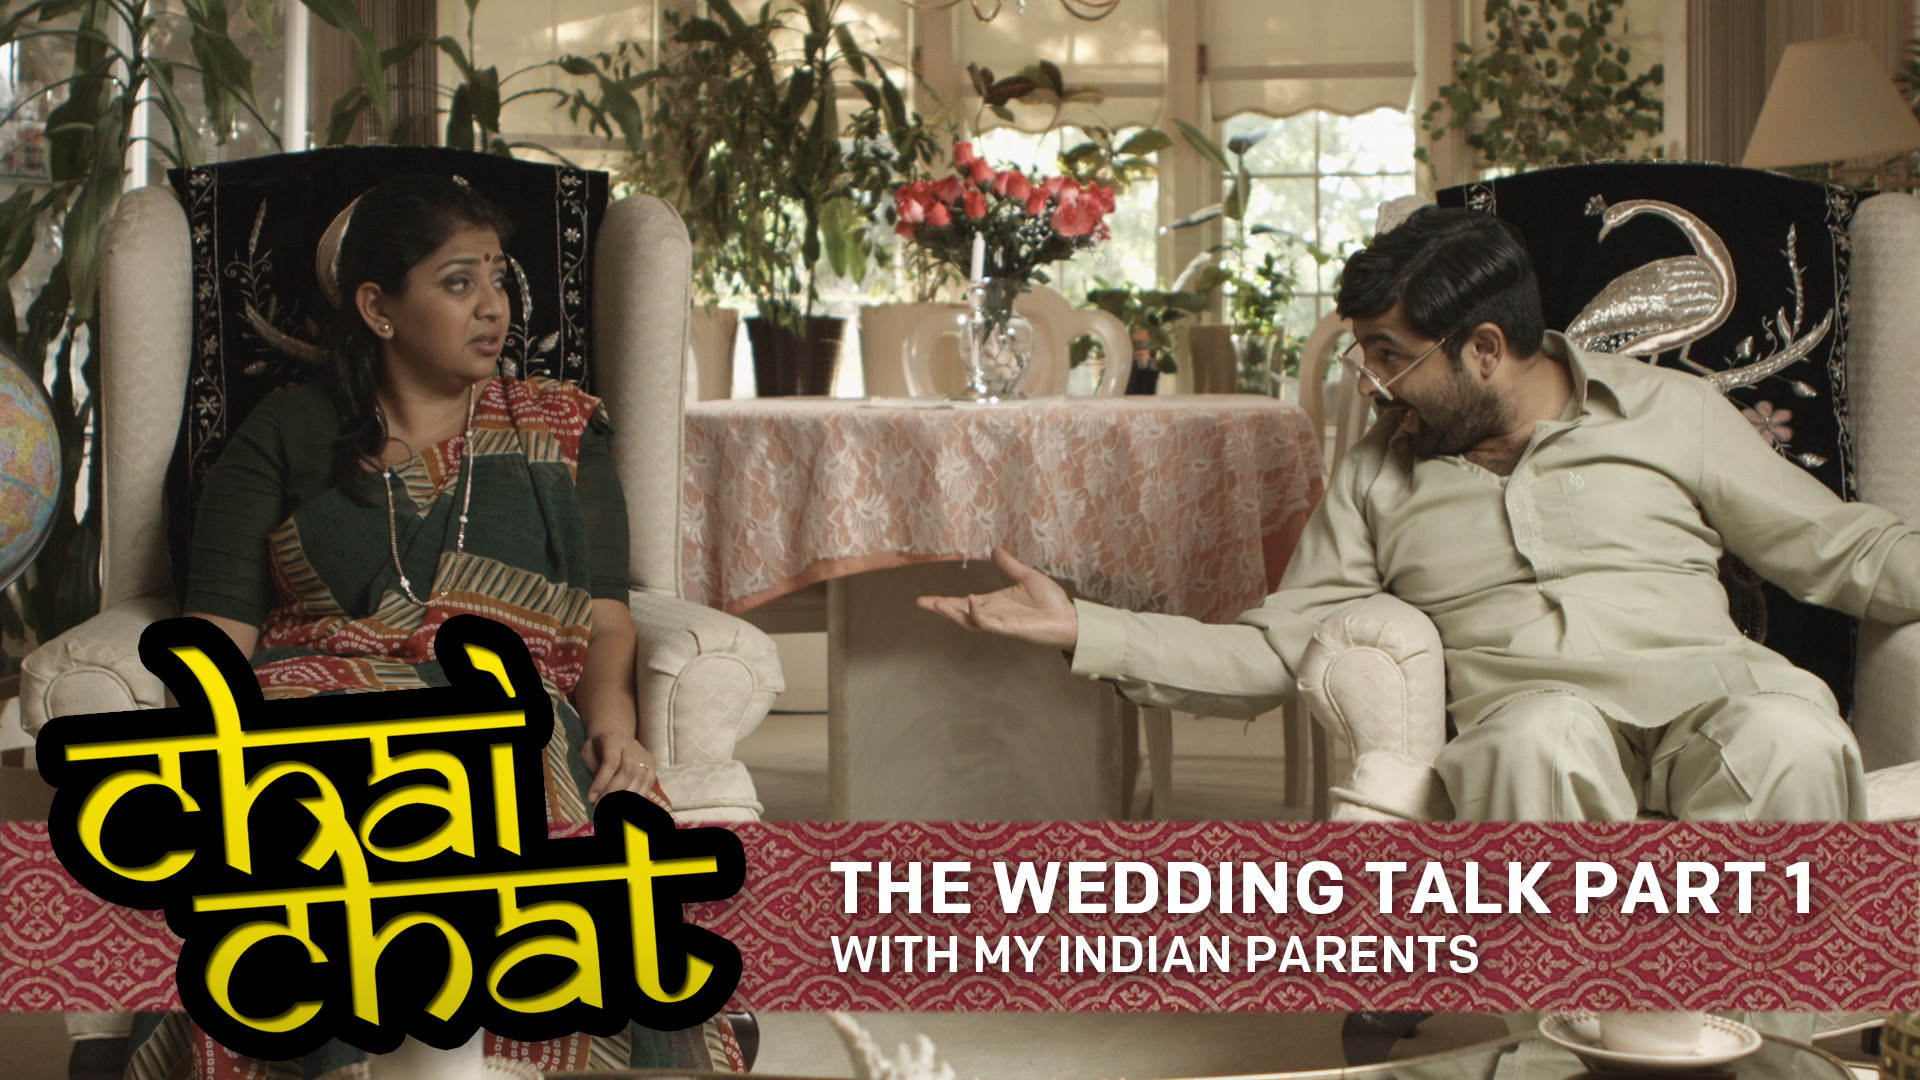 Chai Chat: The Wedding Talk [Part 1] – With My Indian Parents